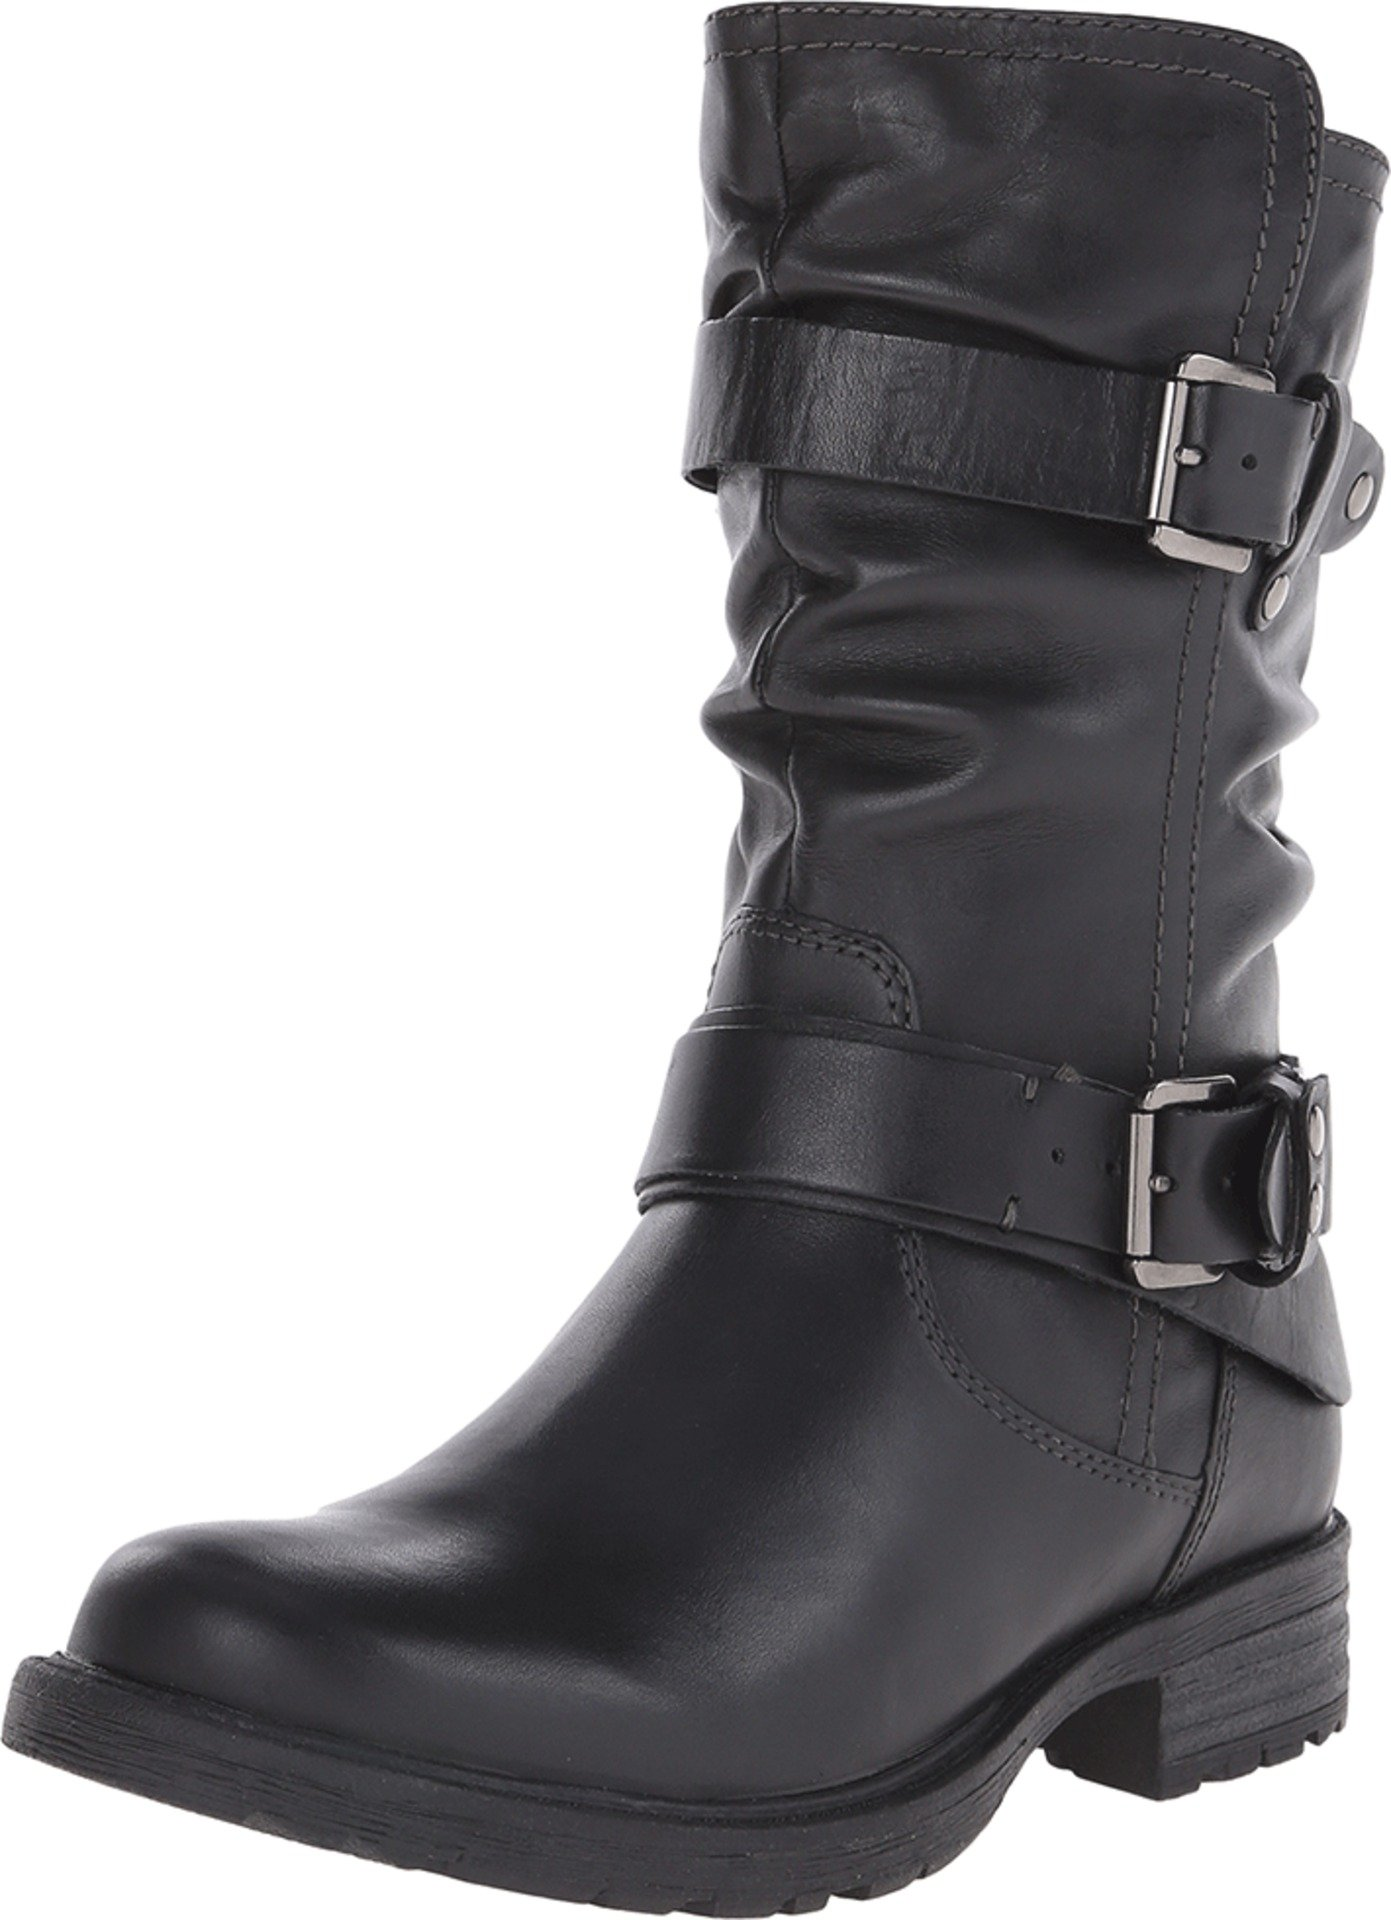 Earth New Women's Everwood Boot Black Leather 10 W by Earth